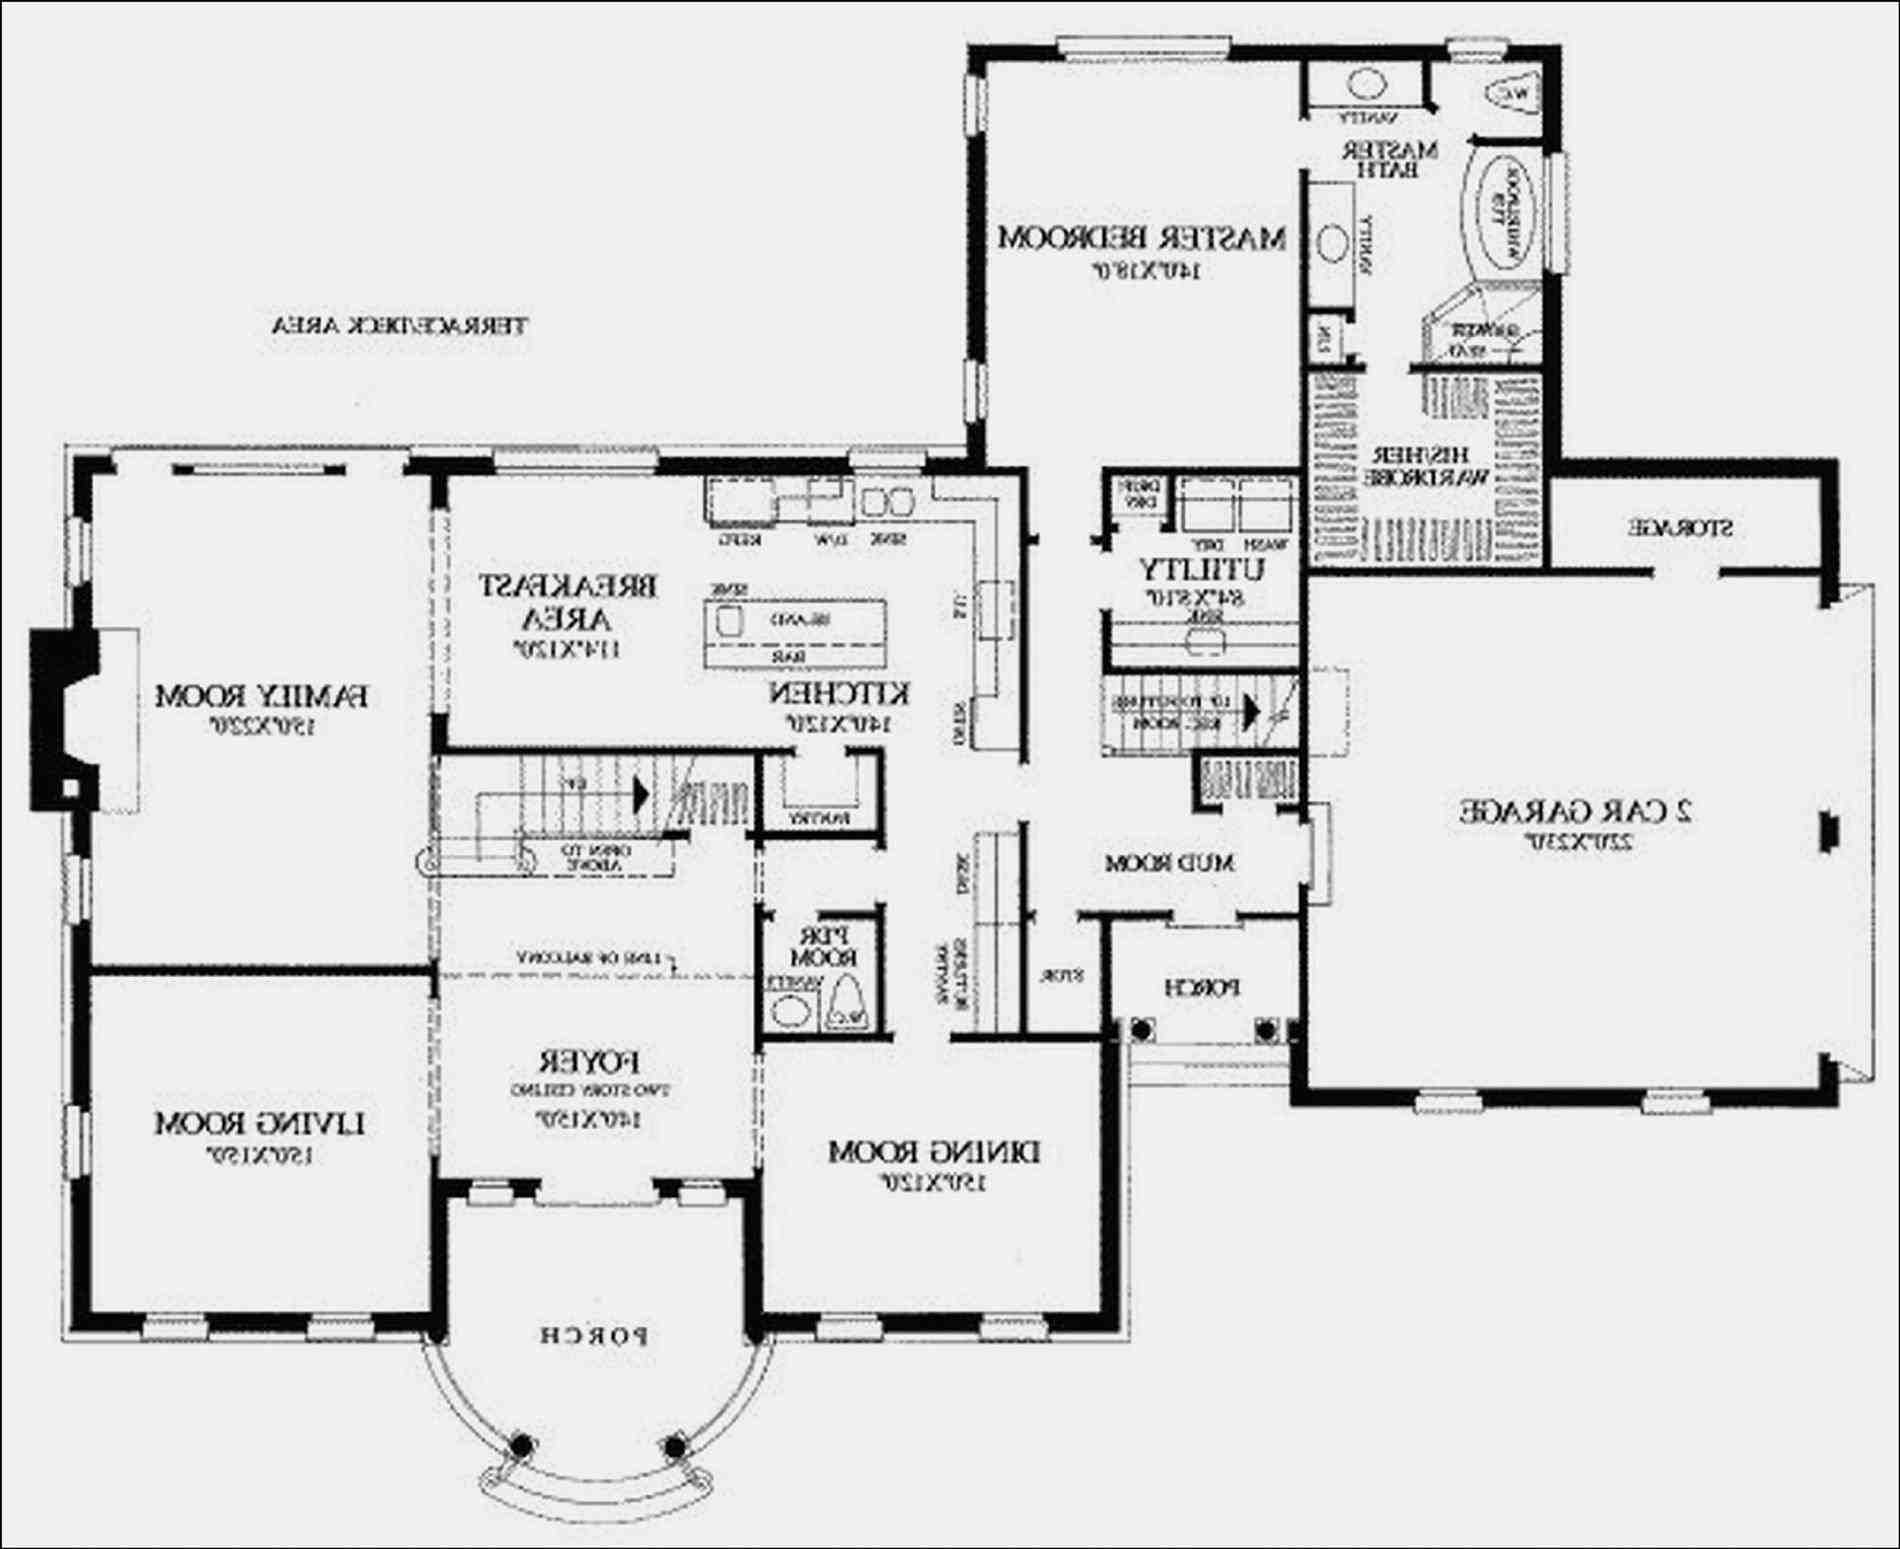 Terrific Master Bedroom Addition Plans | Exquisite Prefab Mobile Home Additions